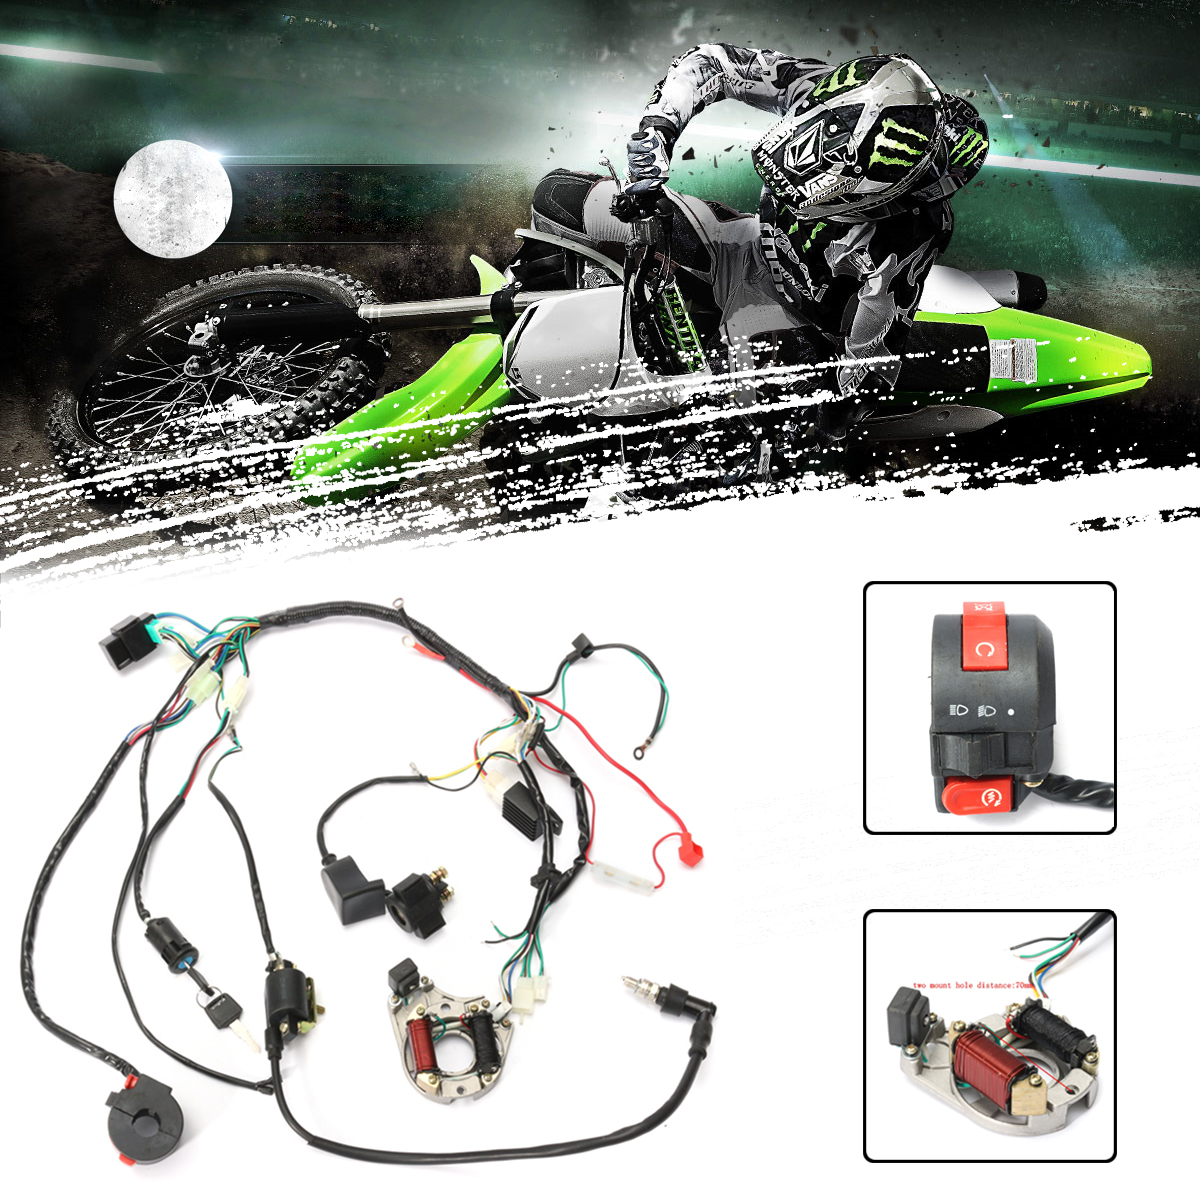 hight resolution of 50cc 125cc cdi wire harness stator assembly wiring set chinese atv electric quad walmart com